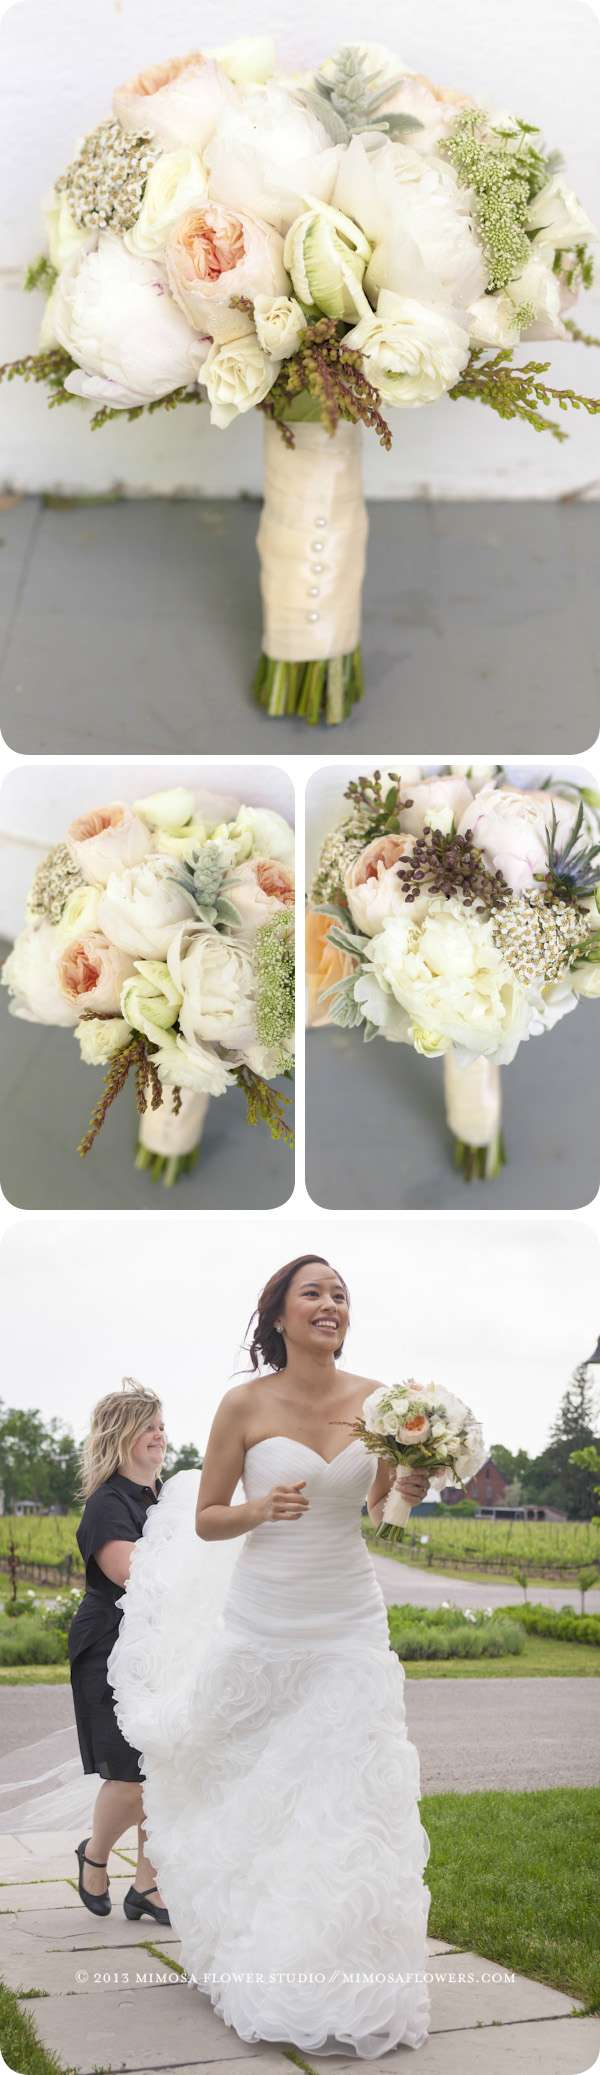 Bride's Bouquet at Ravine Vineyard - Outdoor Wedding Ceremony in Niagara on the Lake